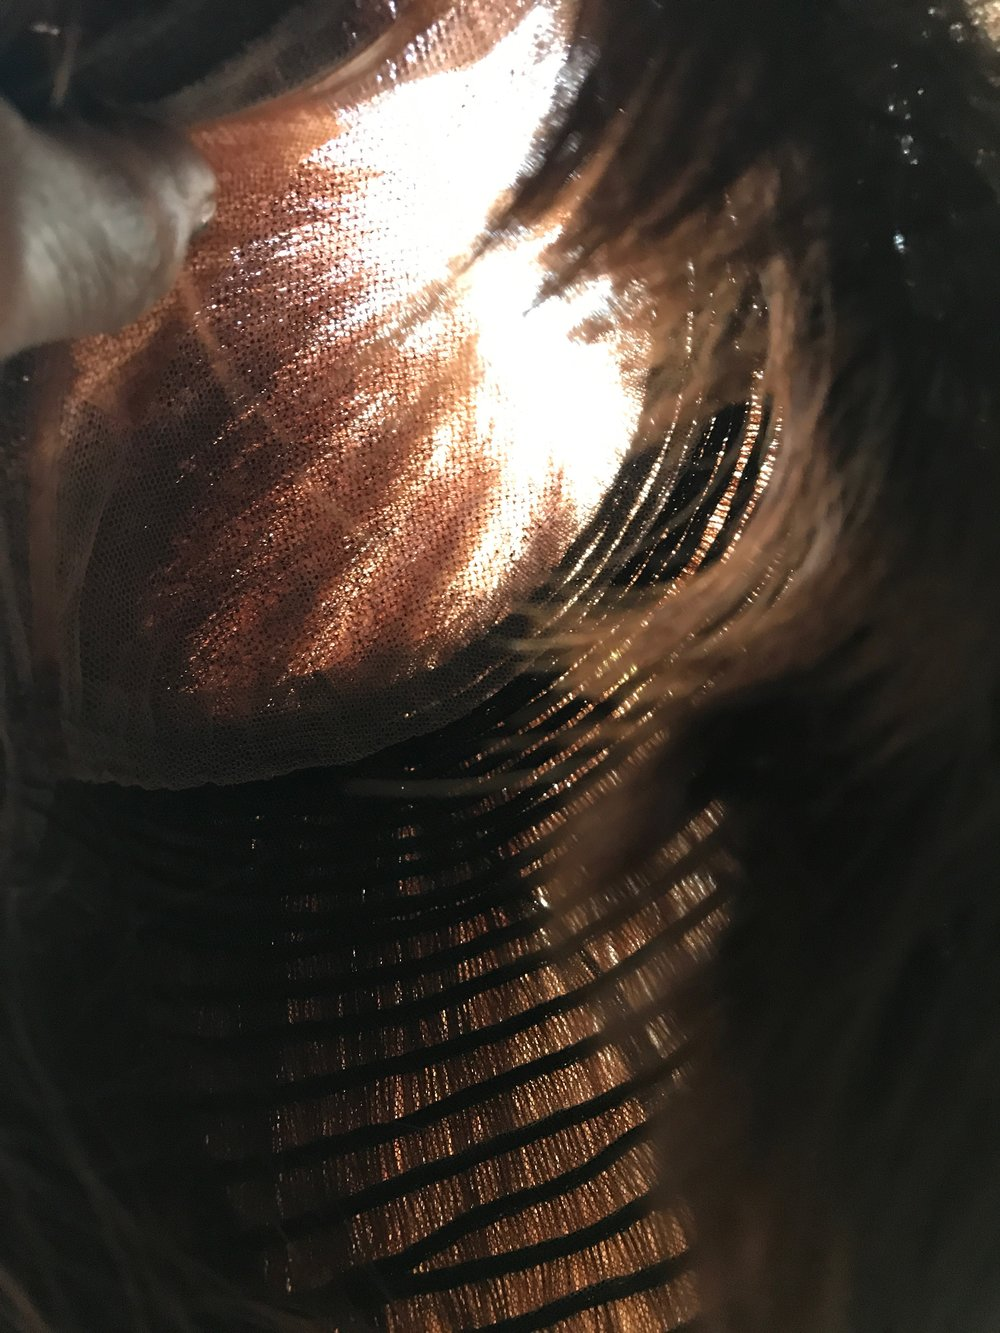 The interior of a 3-year old Follea full wig. The lace front at the top and even the wefting on the bottom (which is different then than Follea wigs are now) show that you can see daylight through the hair fibers.  Daylight=cooler wig wearing.